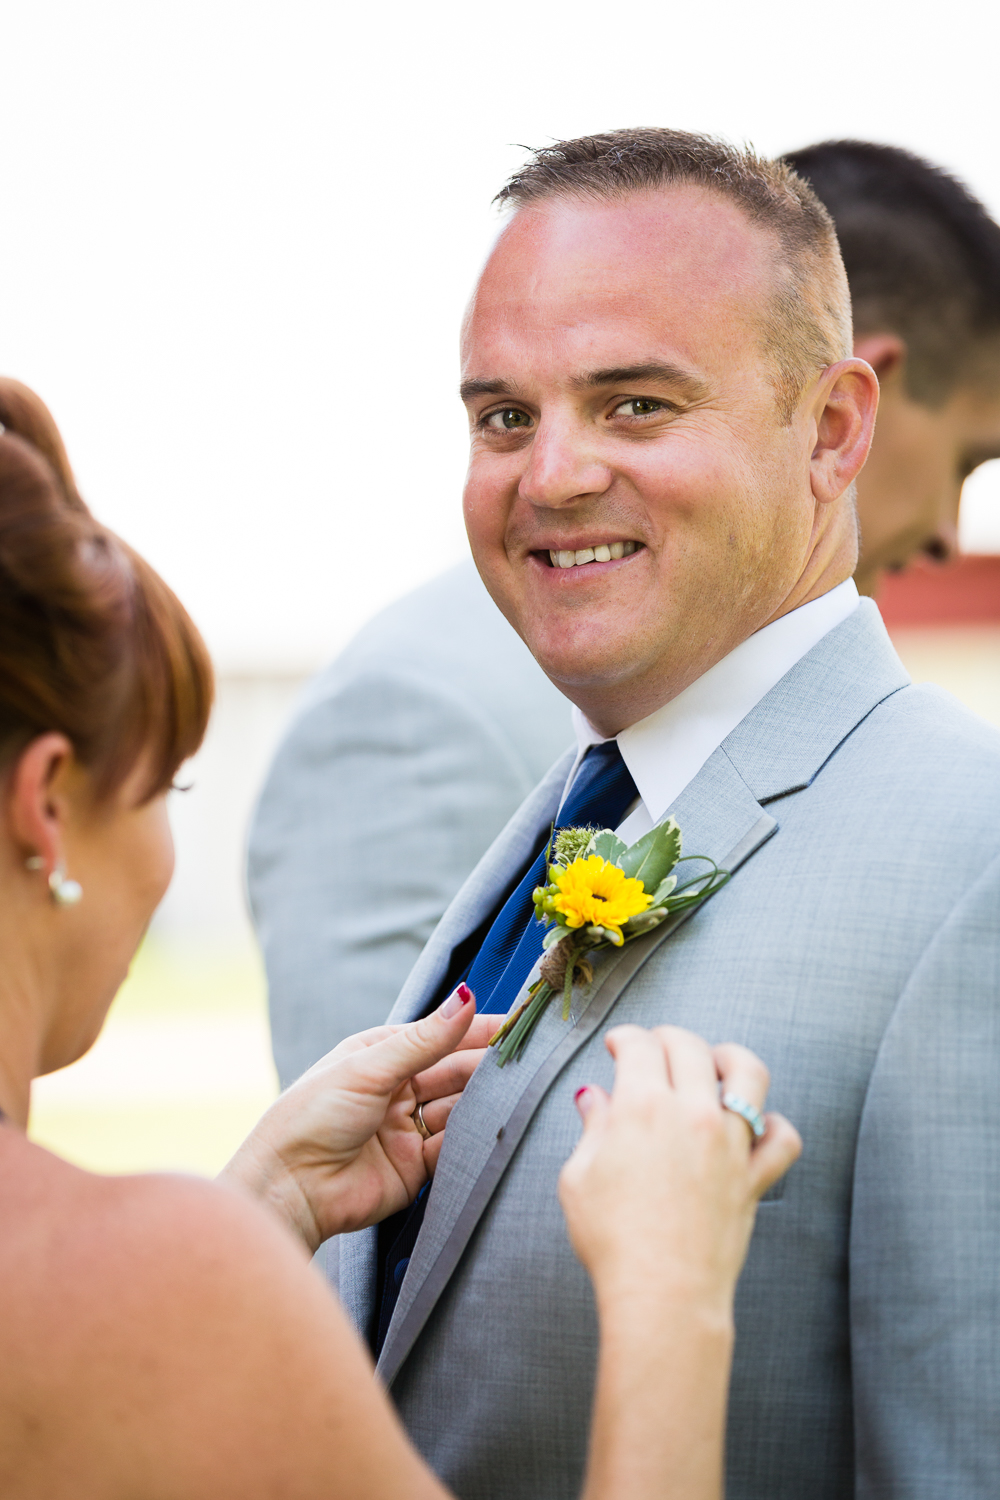 bozeman-montana-wedding-roys-barn-best-man-receives-flowers.jpg